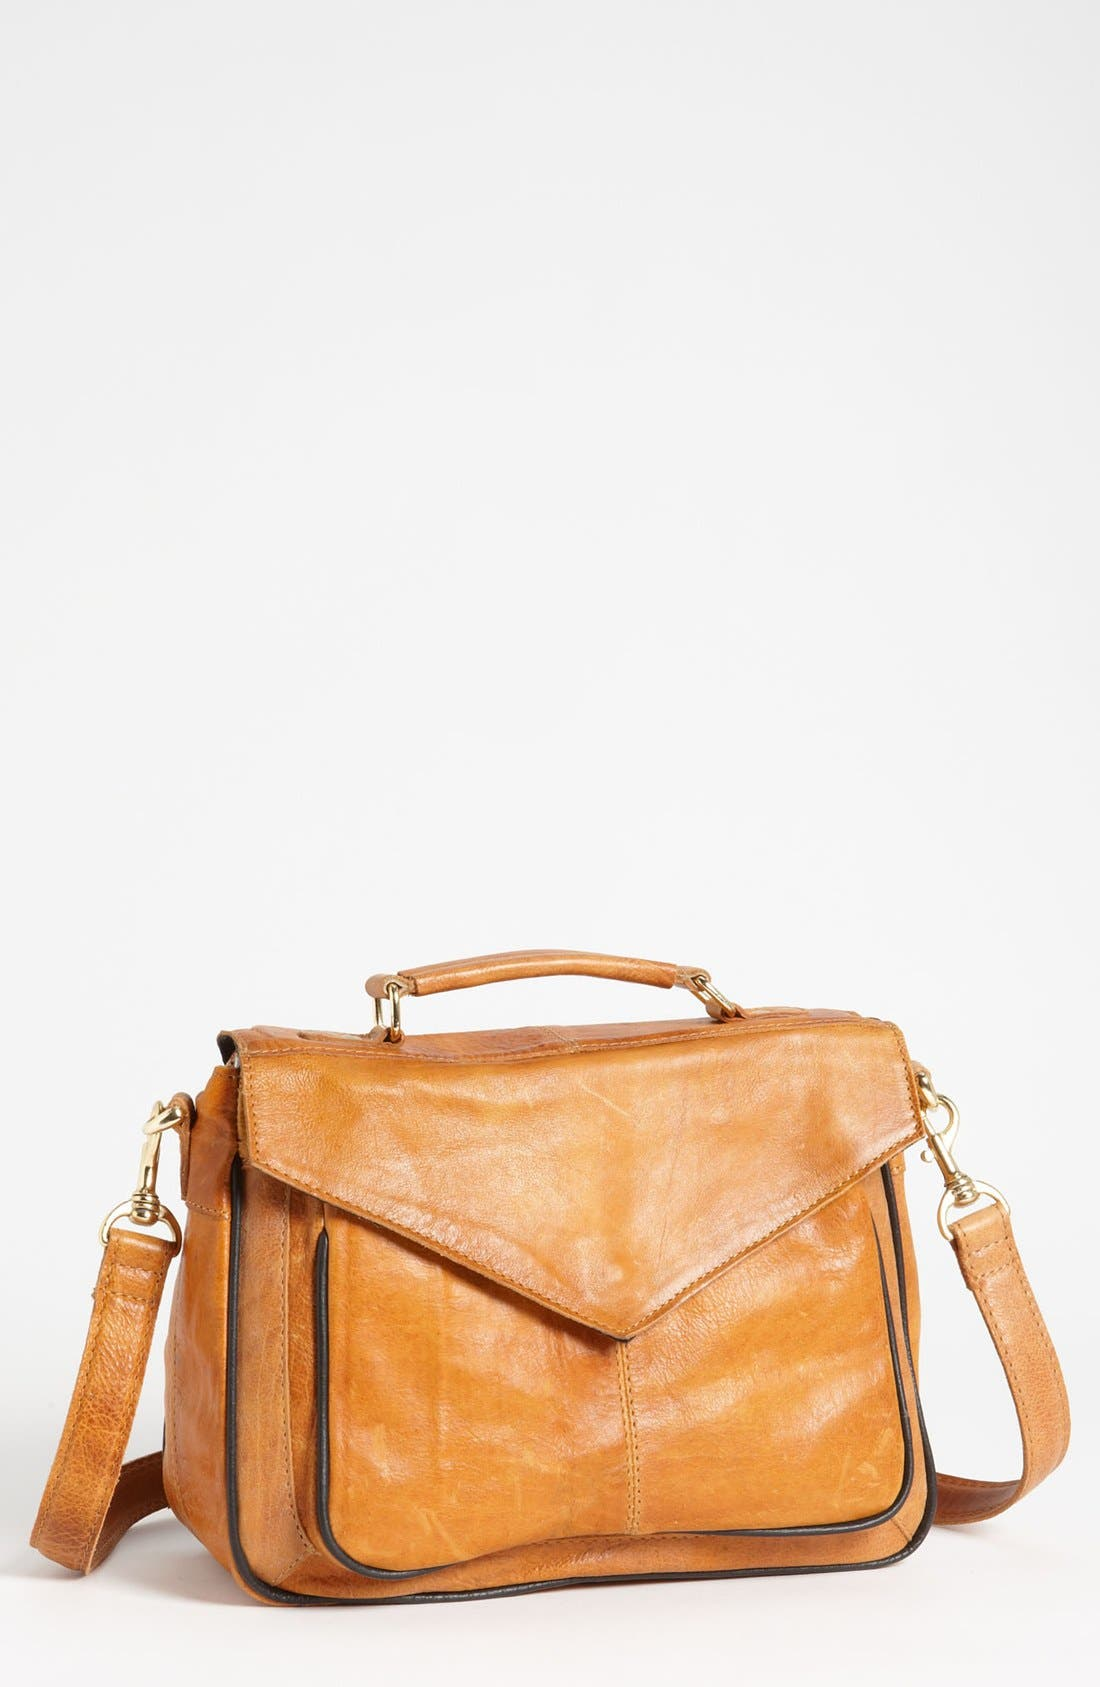 Main Image - Topshop '70s' Leather Satchel